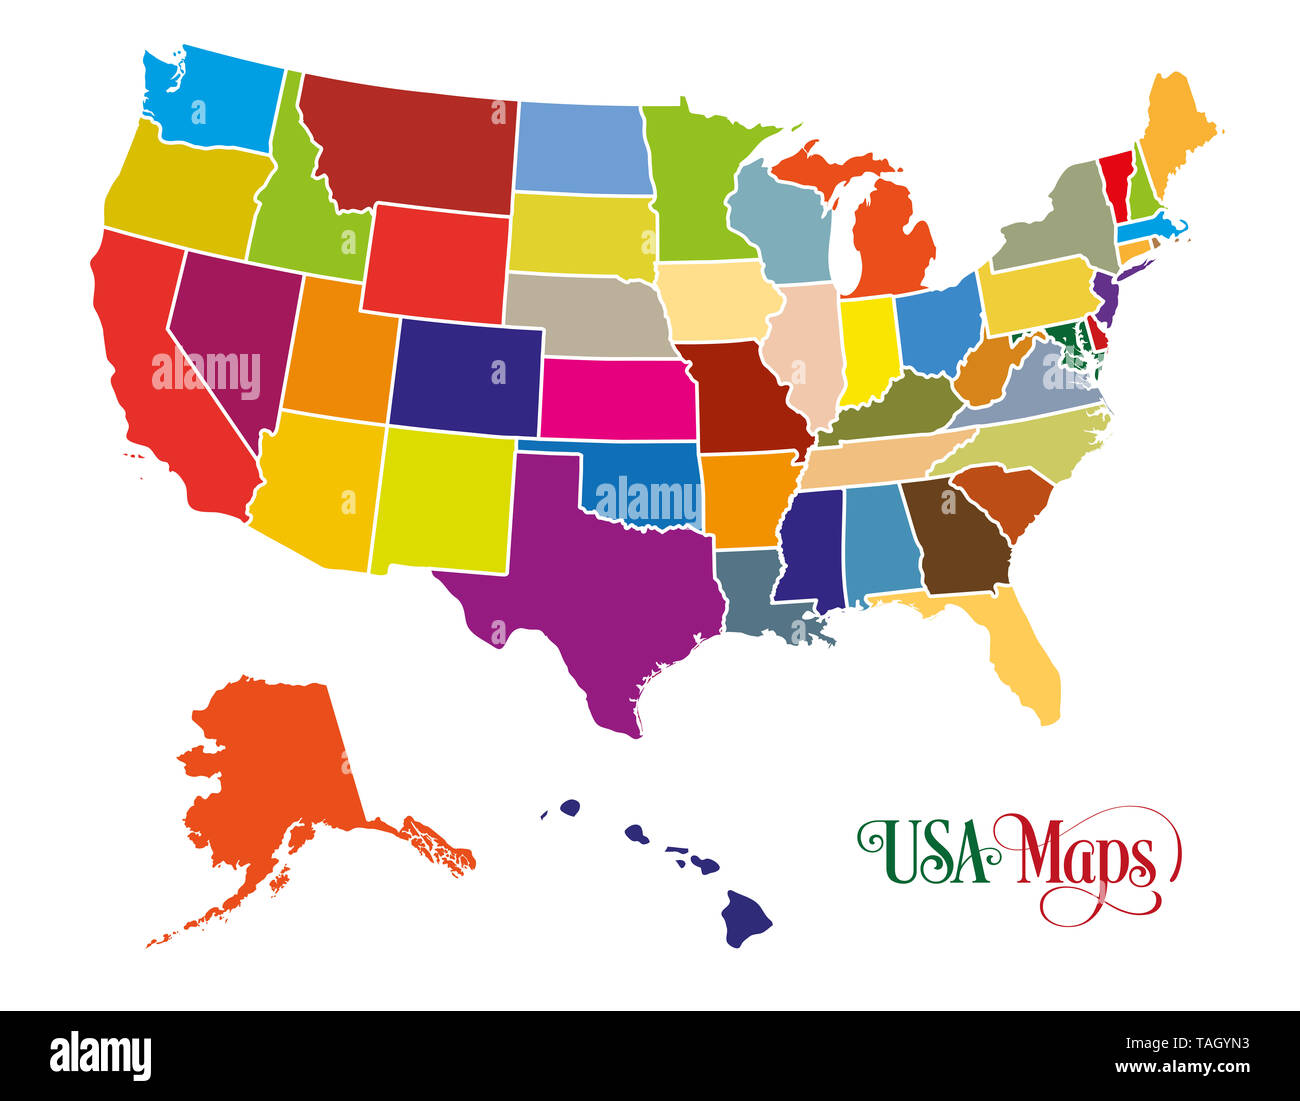 The United States of America (USA), commonly known as the ...